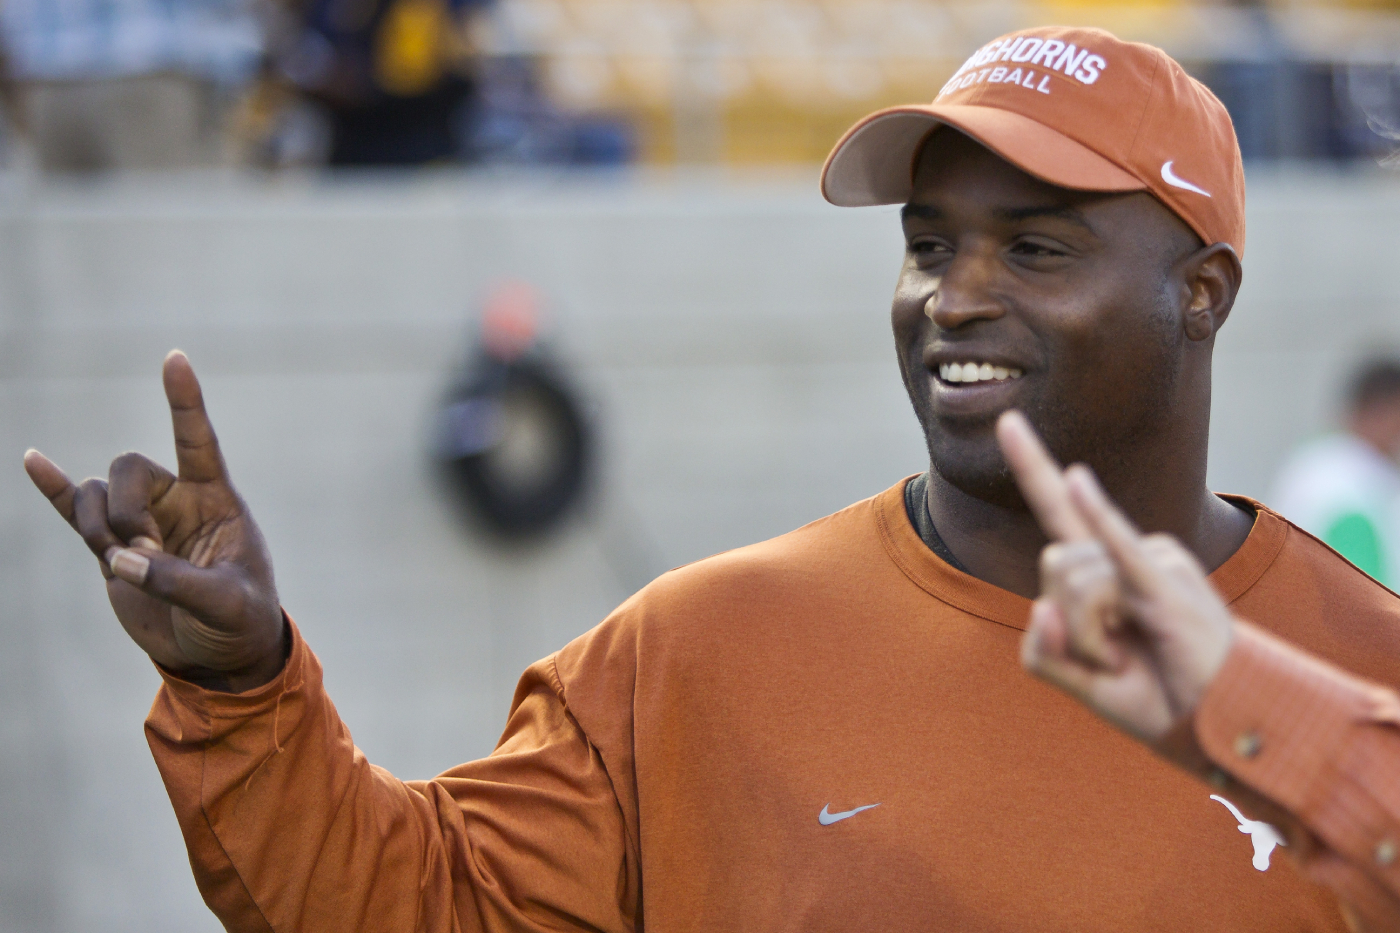 Texas Longhorns legend and 1998 Heisman winner Ricky Williams hasn't played in the NFL since the 2011 season. He could be back soon, though.